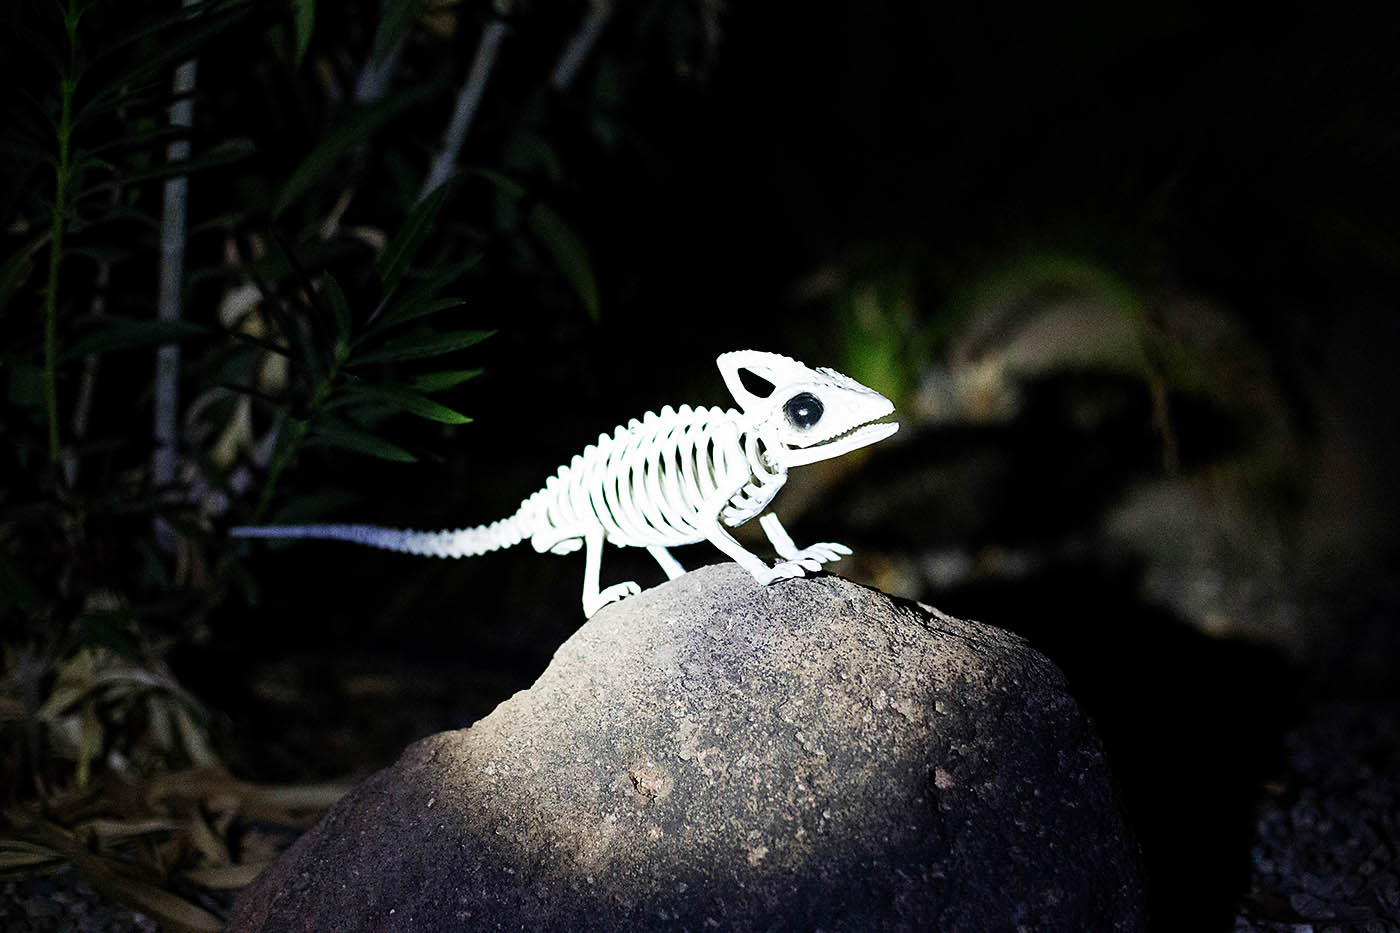 Animal skeleton flashlight hunt - fun activity or game for Halloween